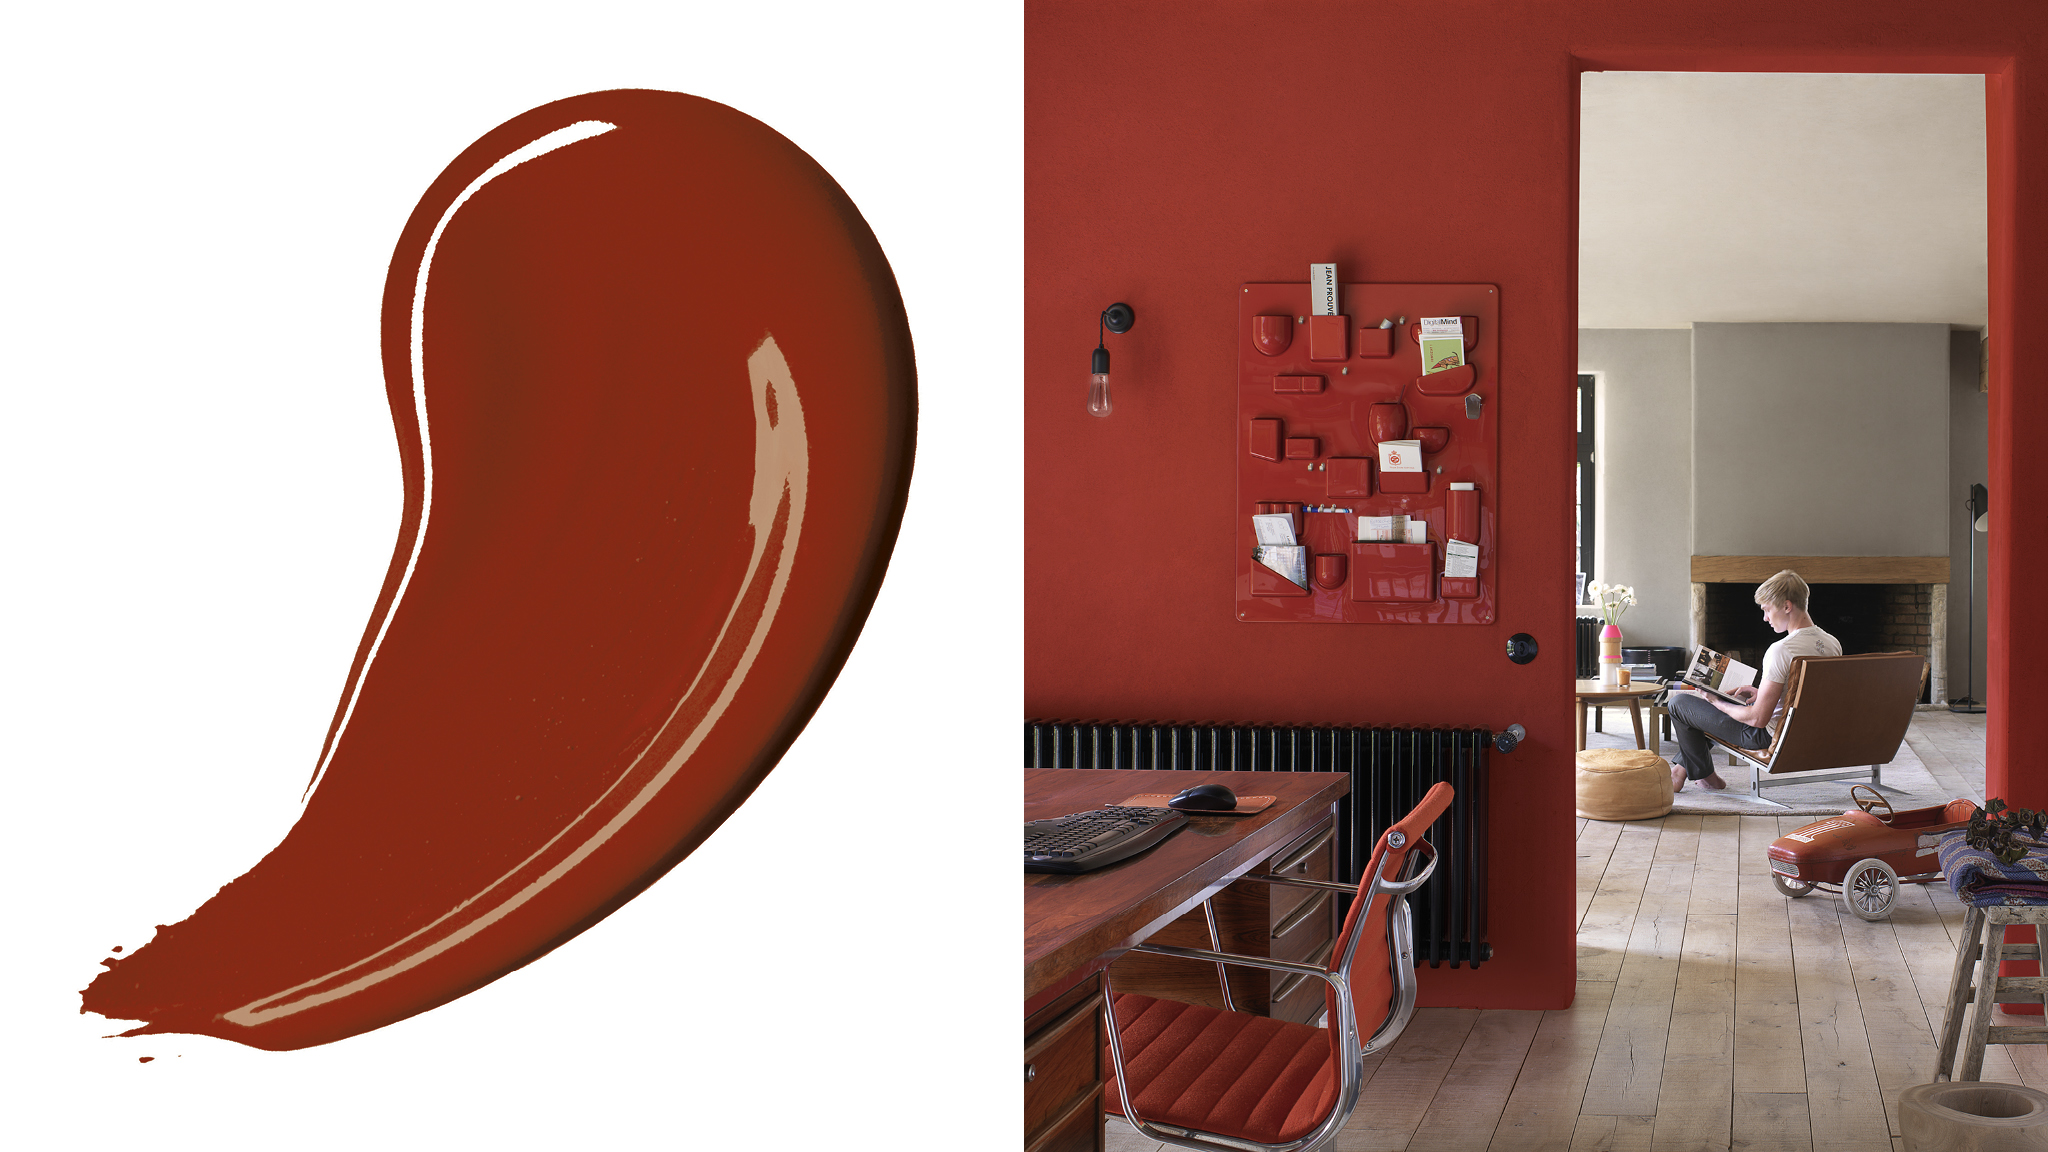 Choosing a darker colour scheme is a great way to make a room feel instantly more cosy and intimate. Rich, deep reds or chocolatey shades tend to pull walls closer towards you.